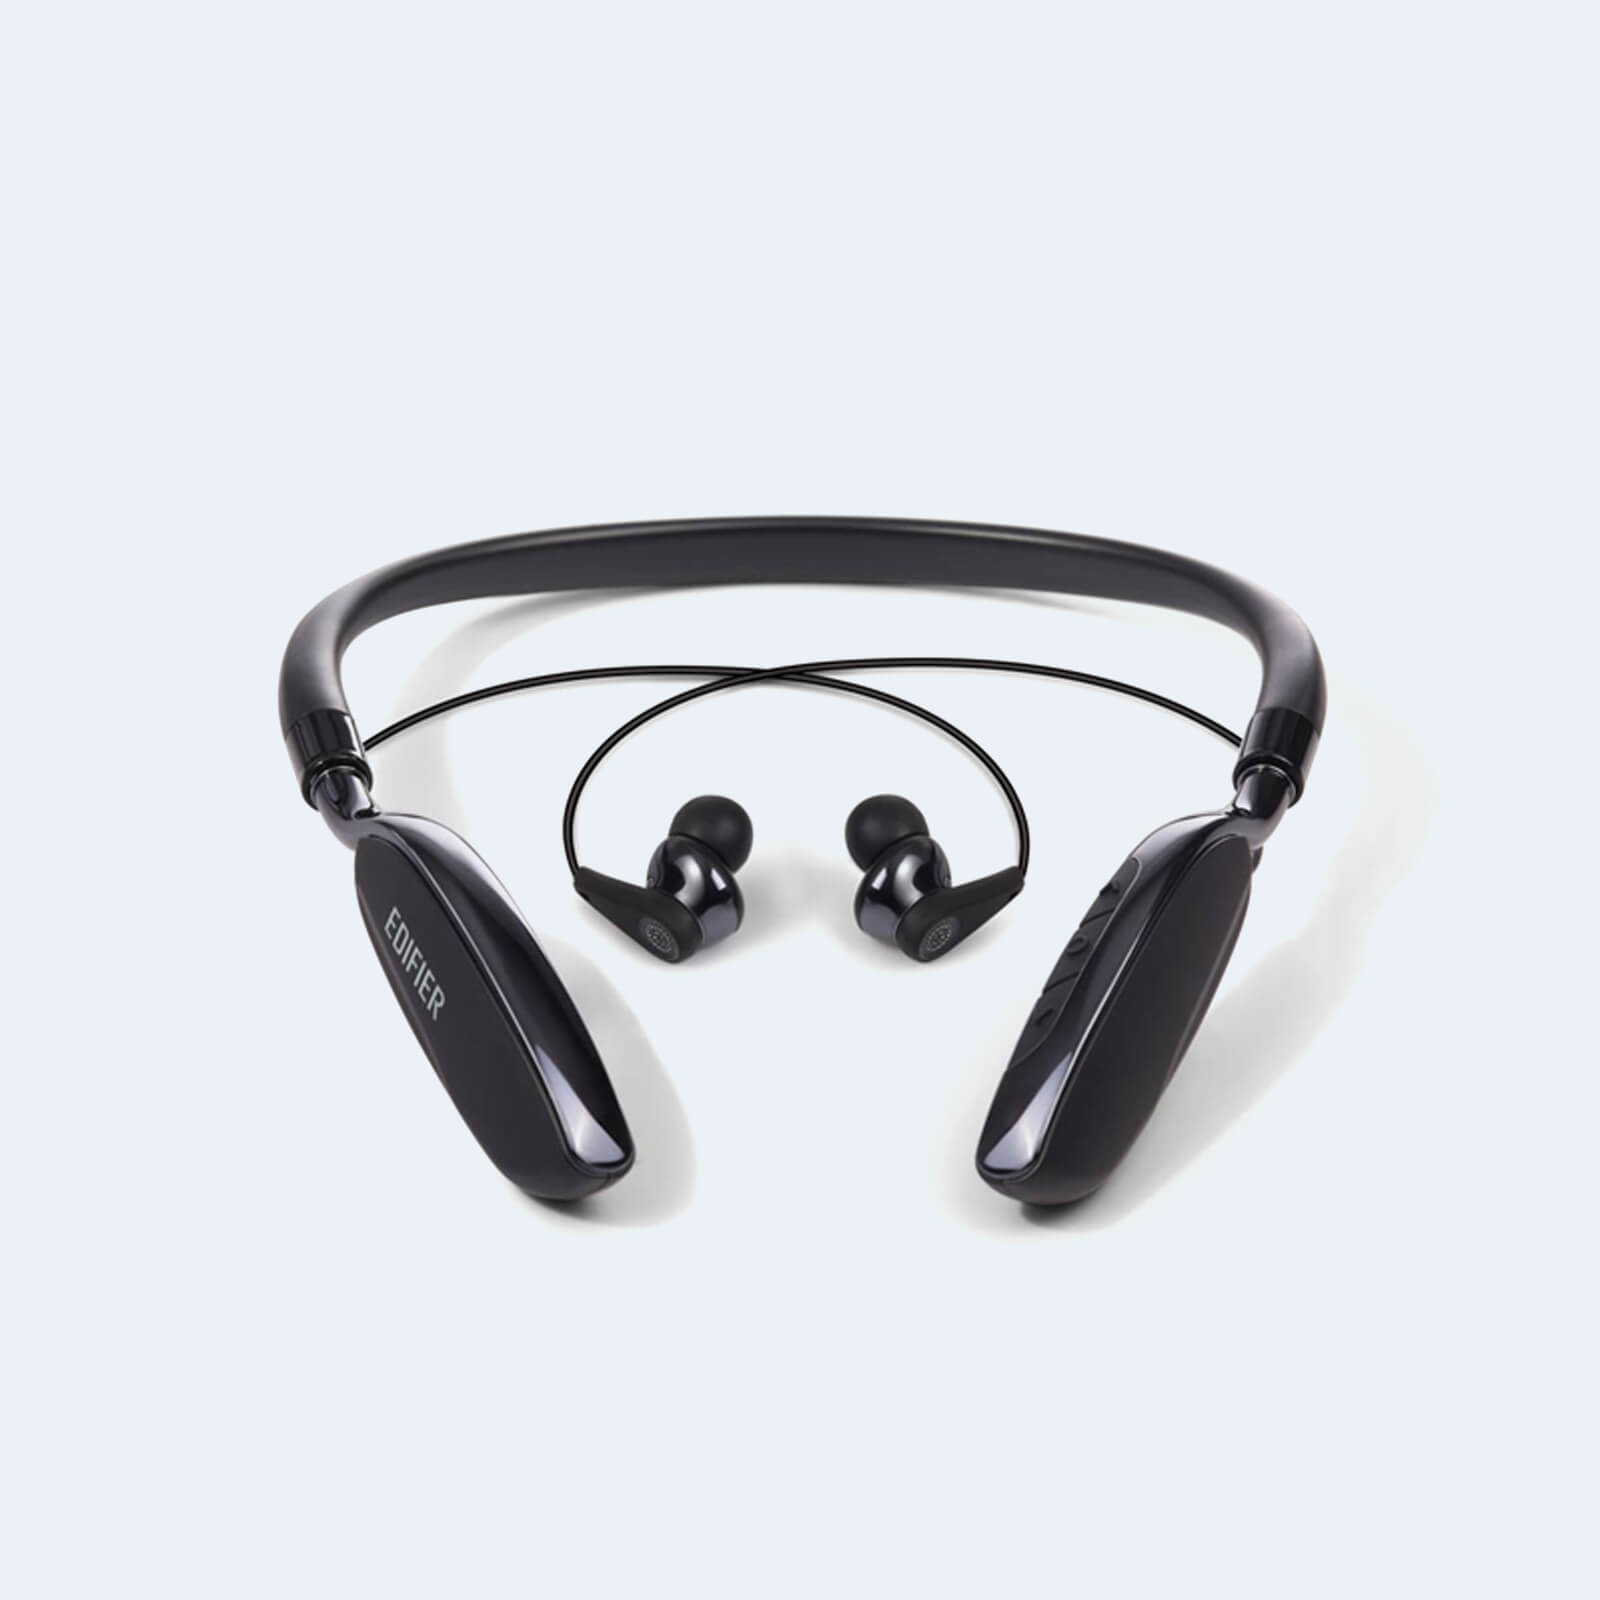 best-neckband-wireless-headset-bluetooth-edifier-w360bt-featured